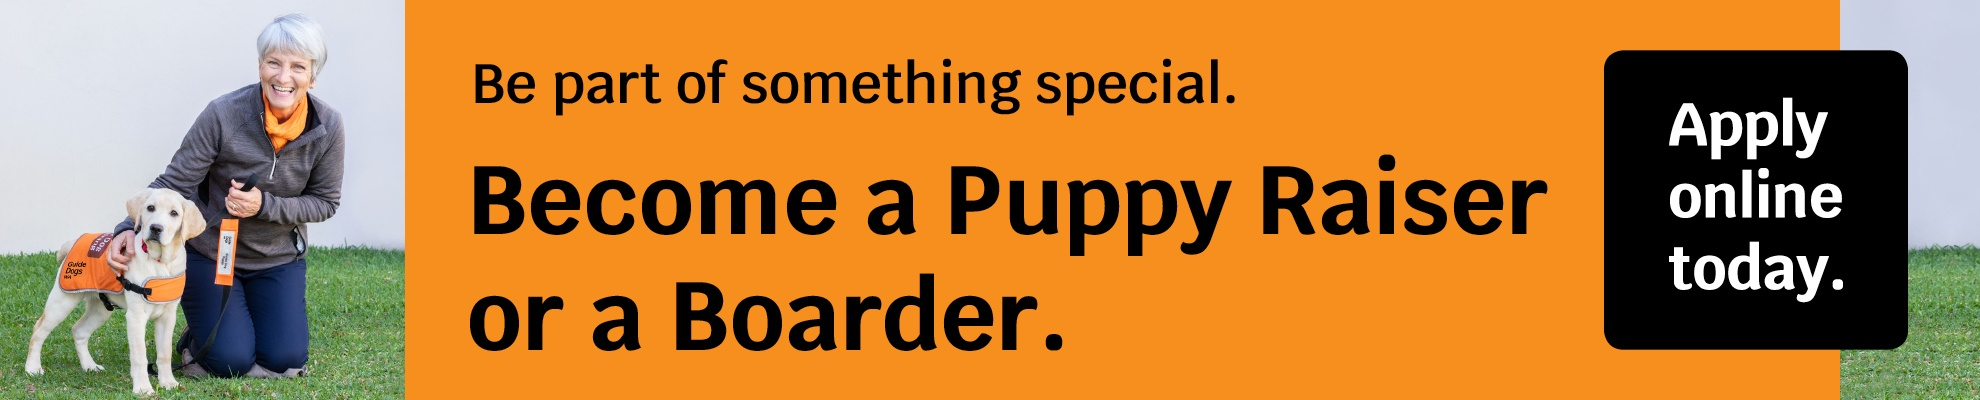 Image of volunteer with a dog in training outside on the grass. Text reads: Be part of something special. Become a Puppy Raiser or a Boarder. Apply online today.